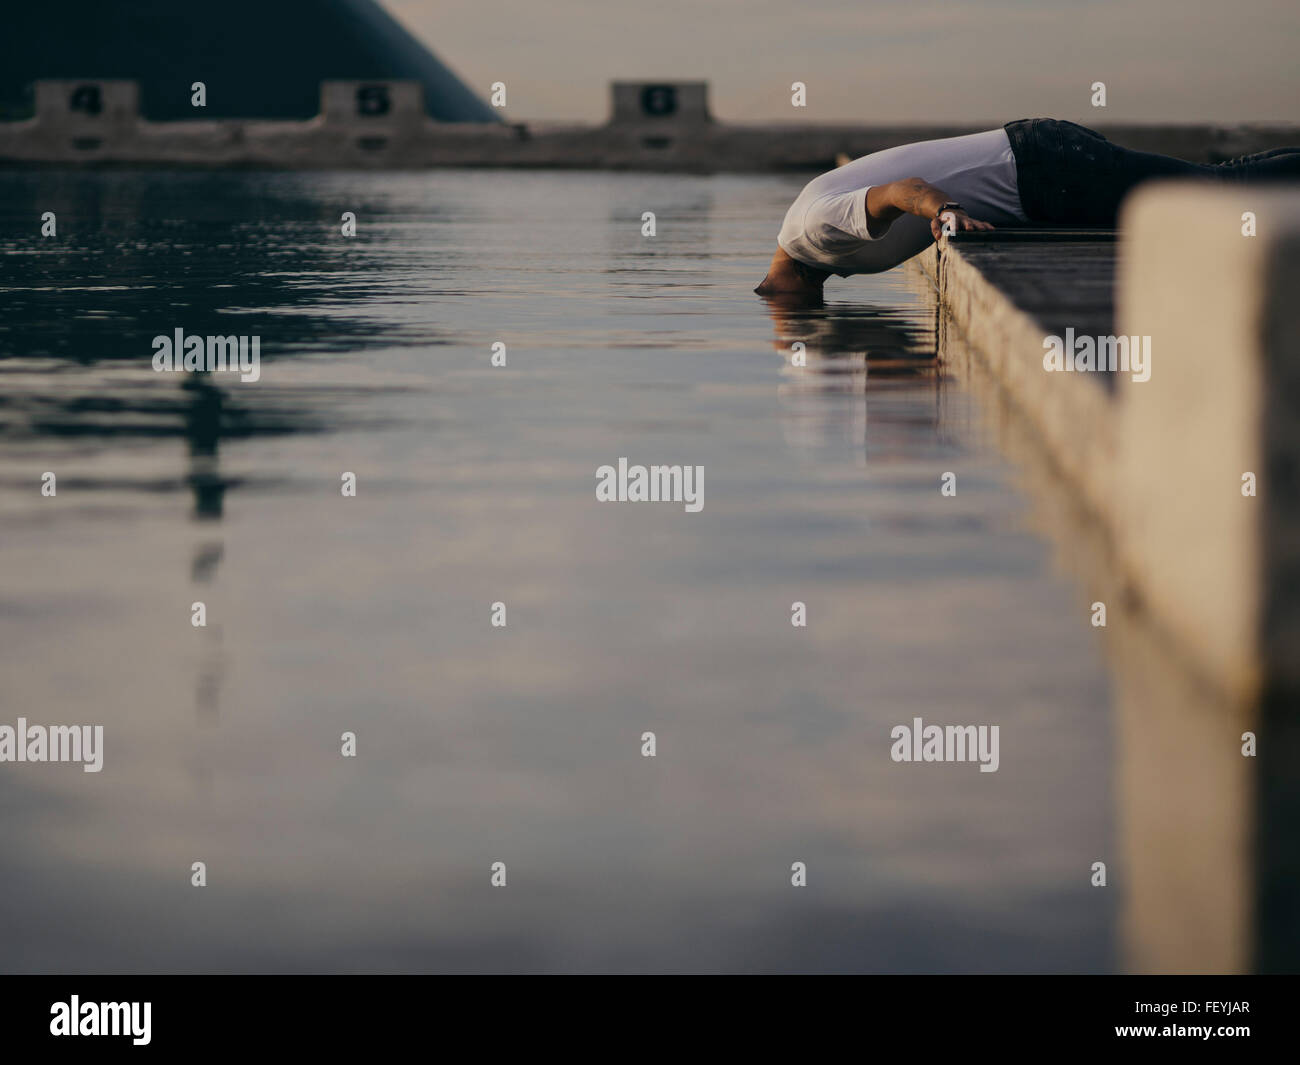 Man Putting His Head In Water - Stock Image